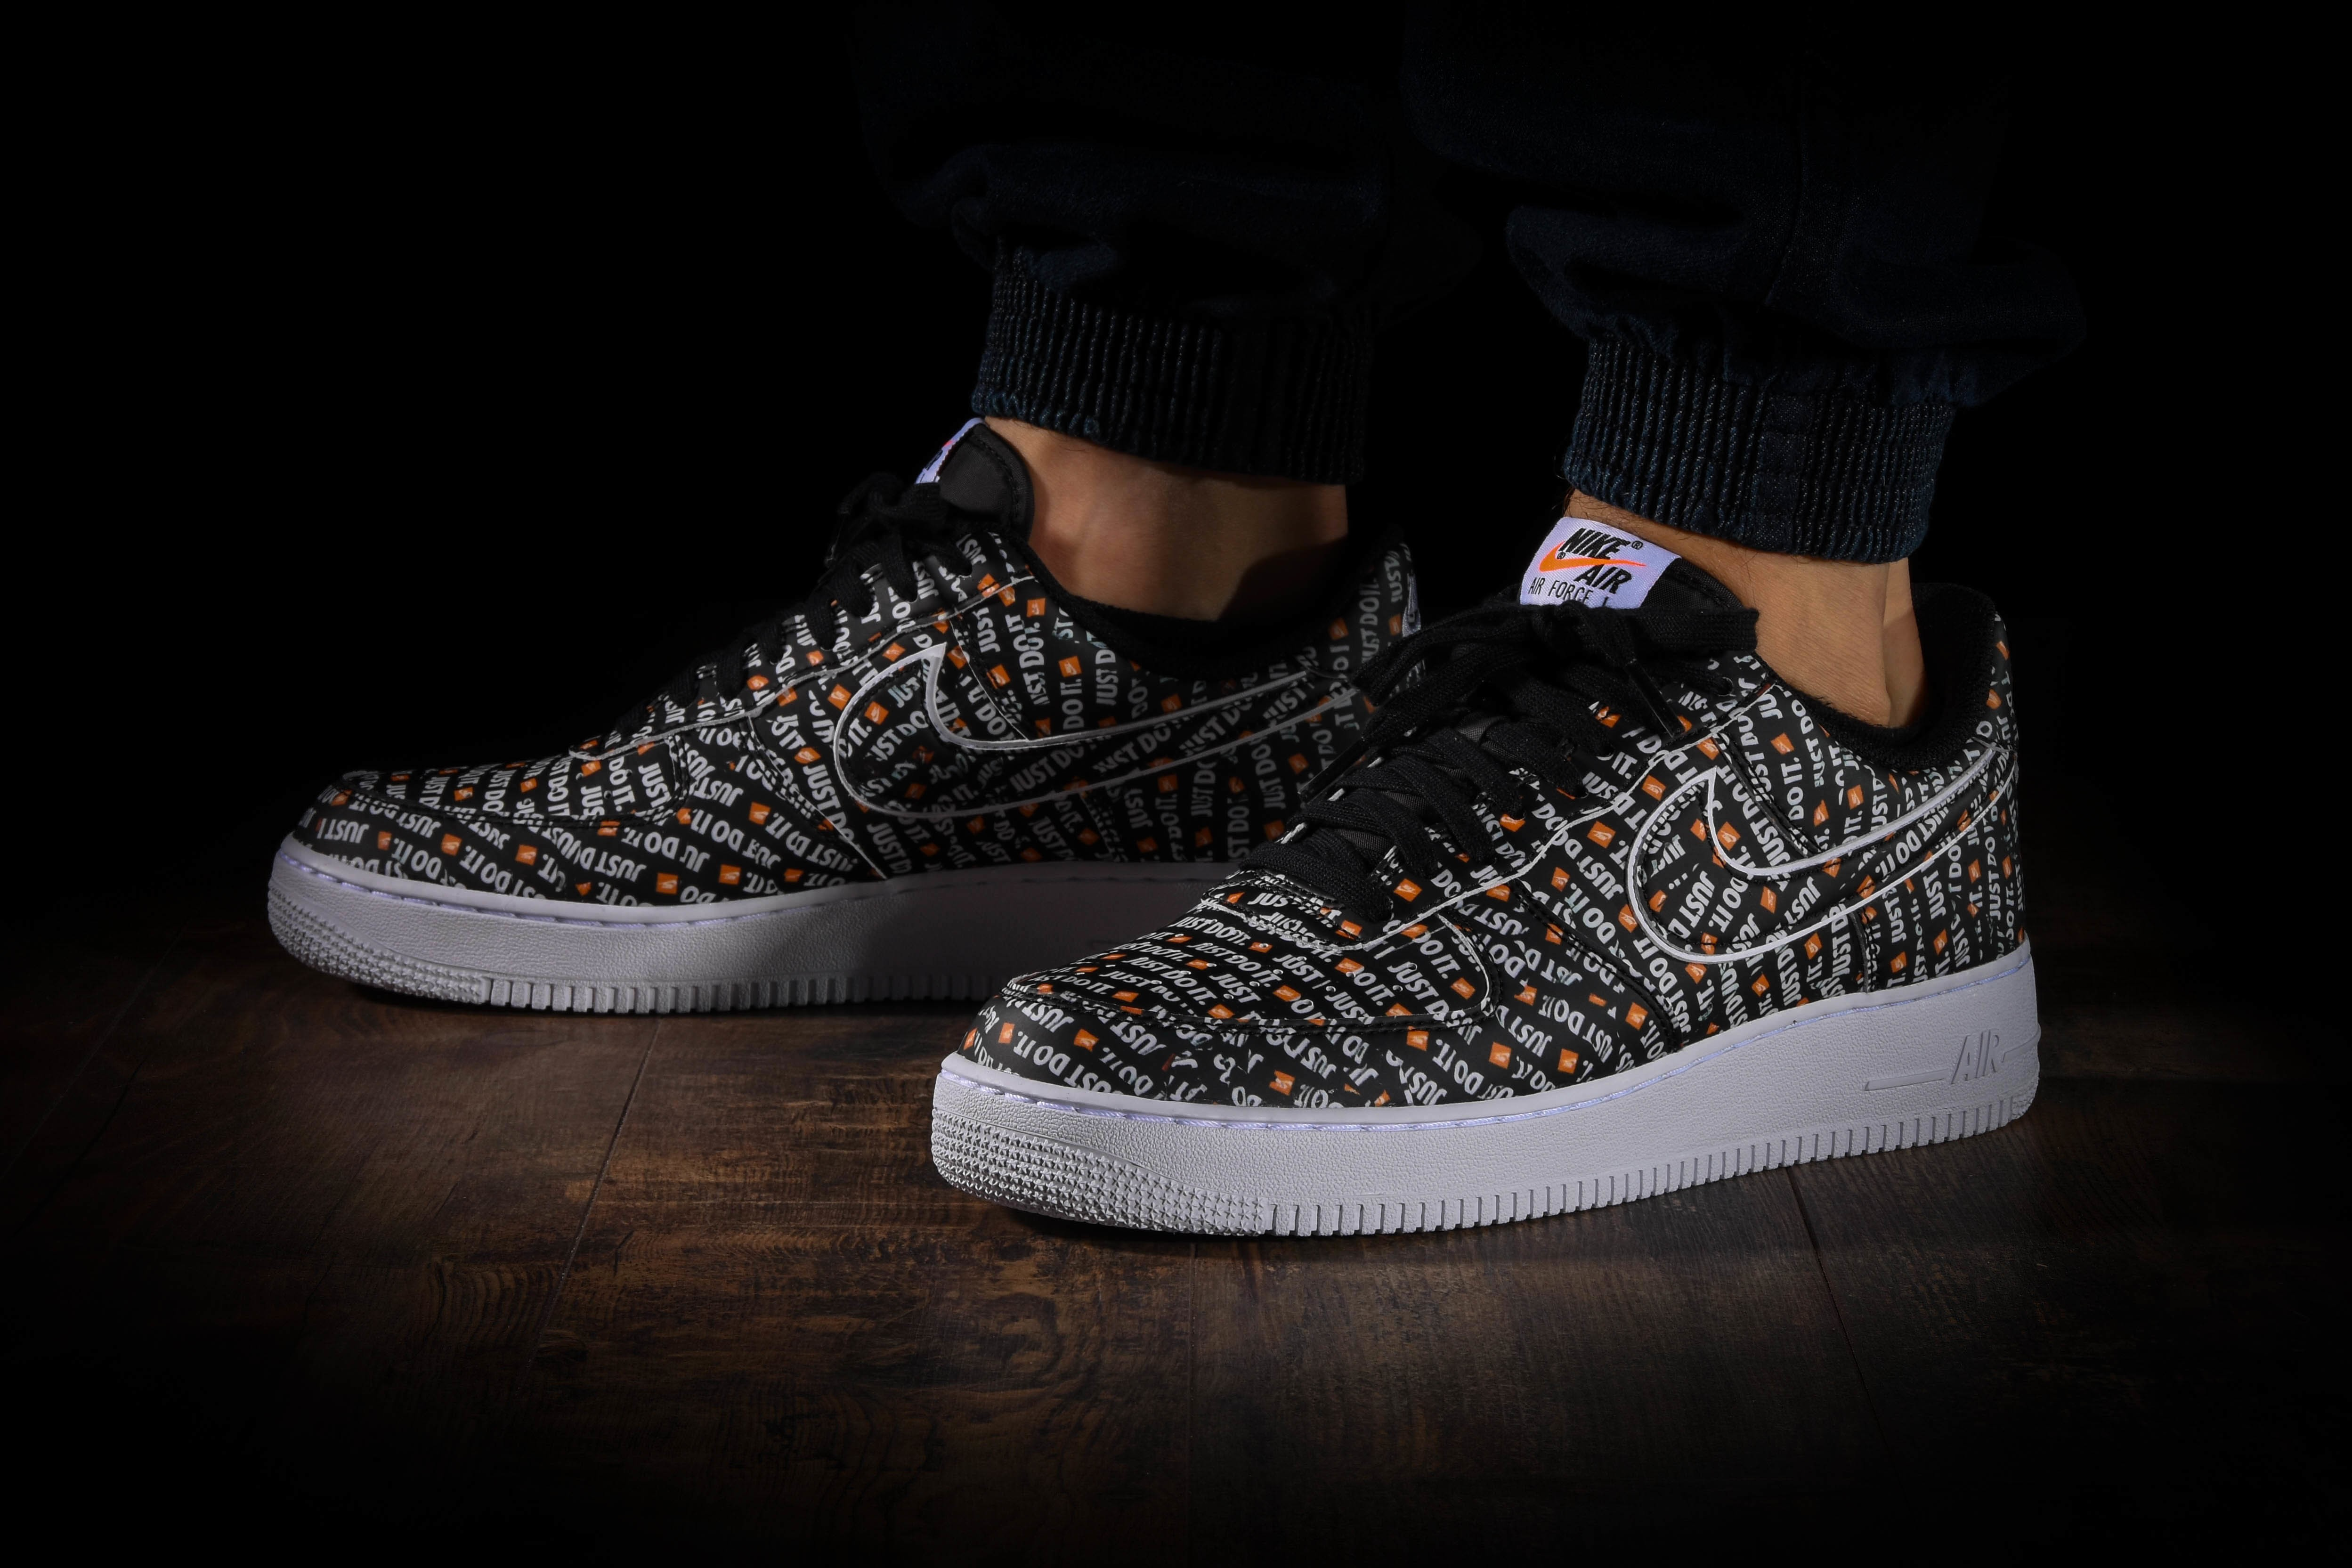 NIKE AIR FORCE 1 '07 LV8 JDI for £95.00